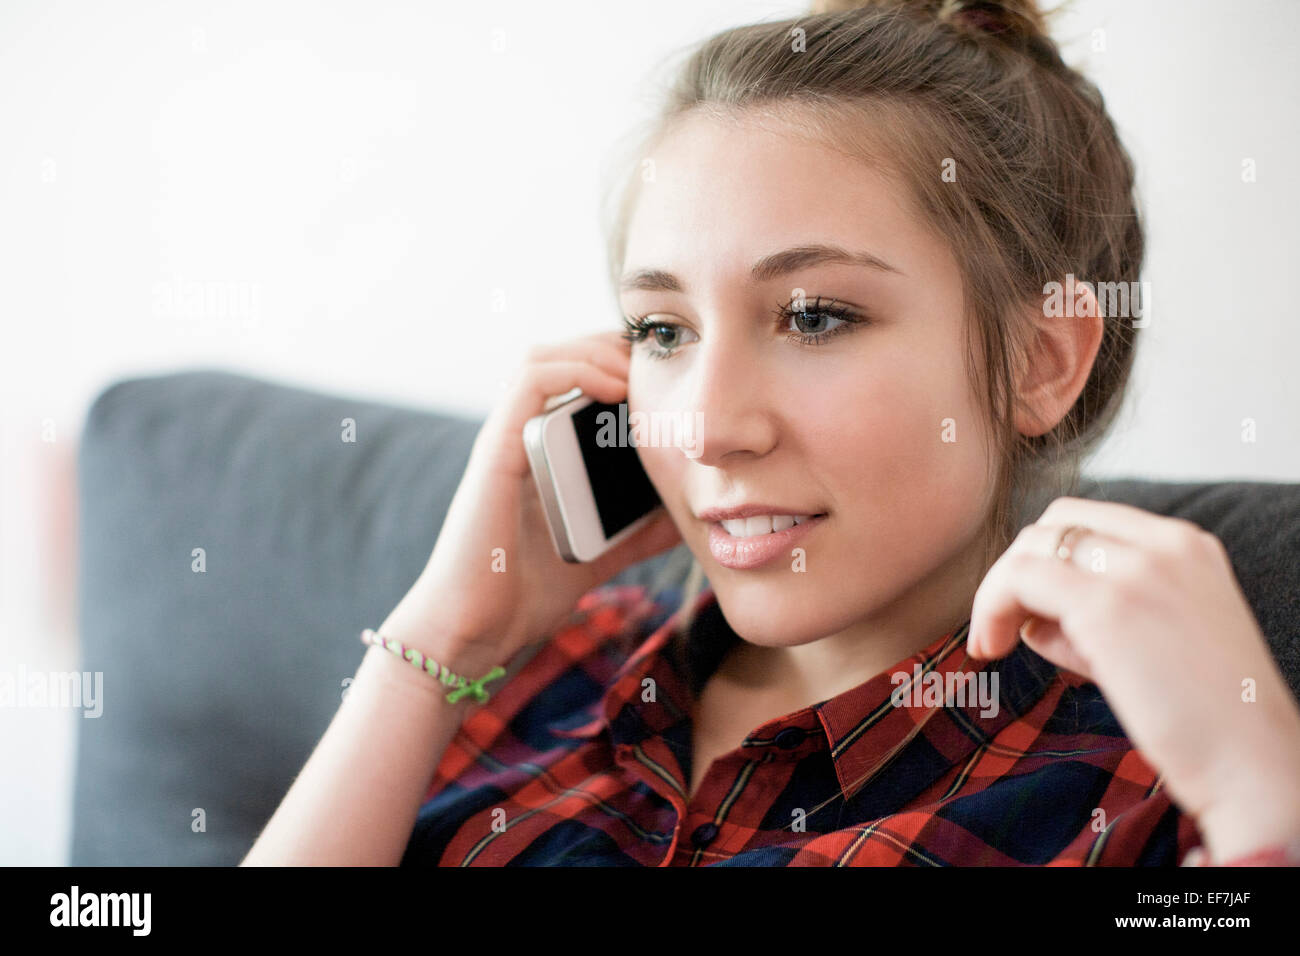 Girl on the phone - Stock Image